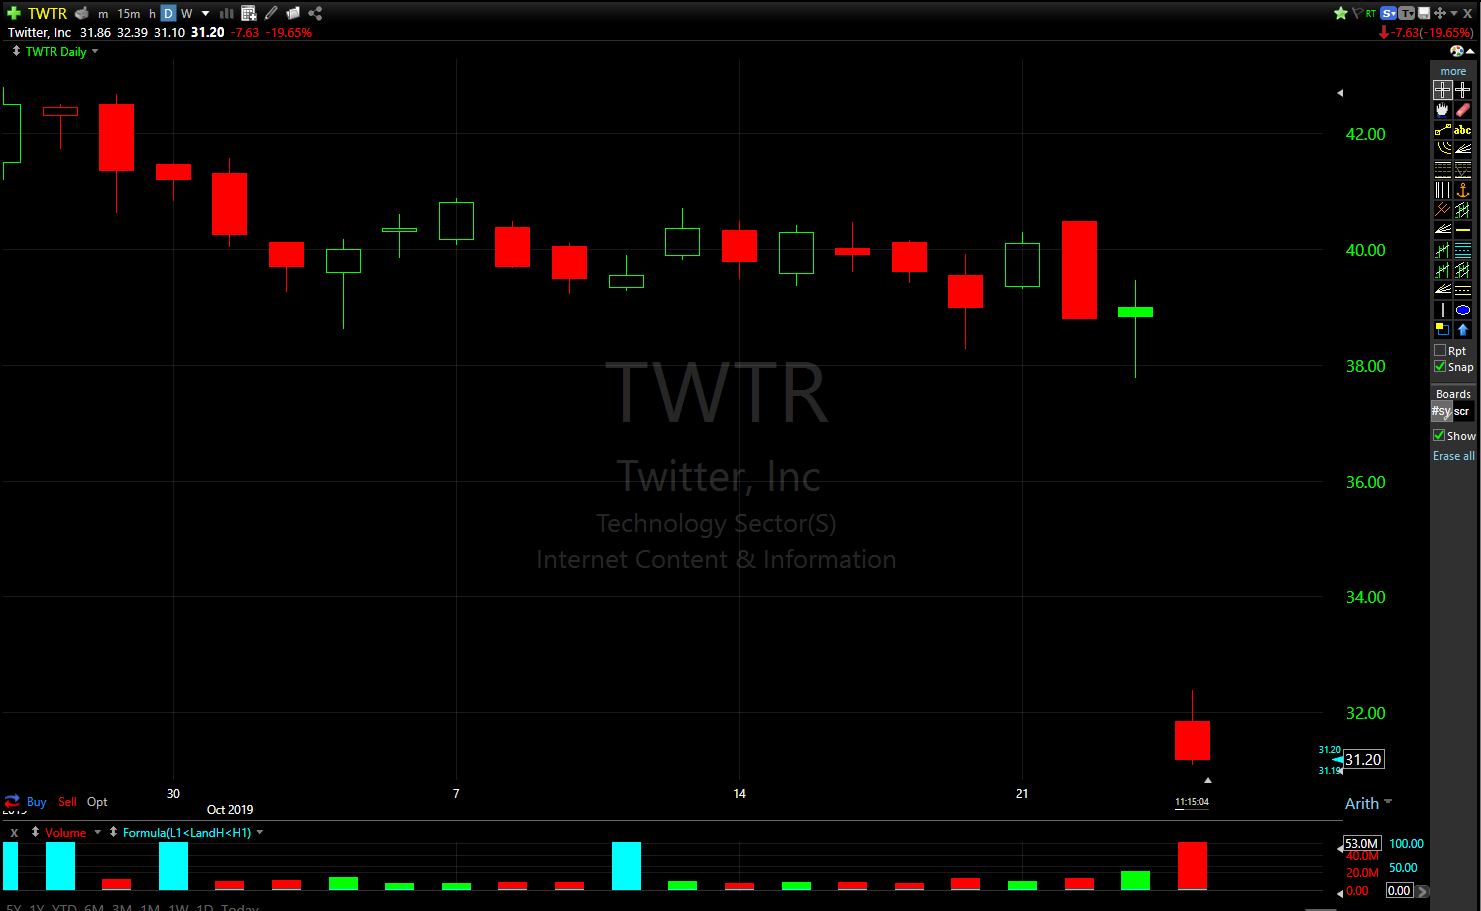 Twitter's stock is down nearly 20% today.